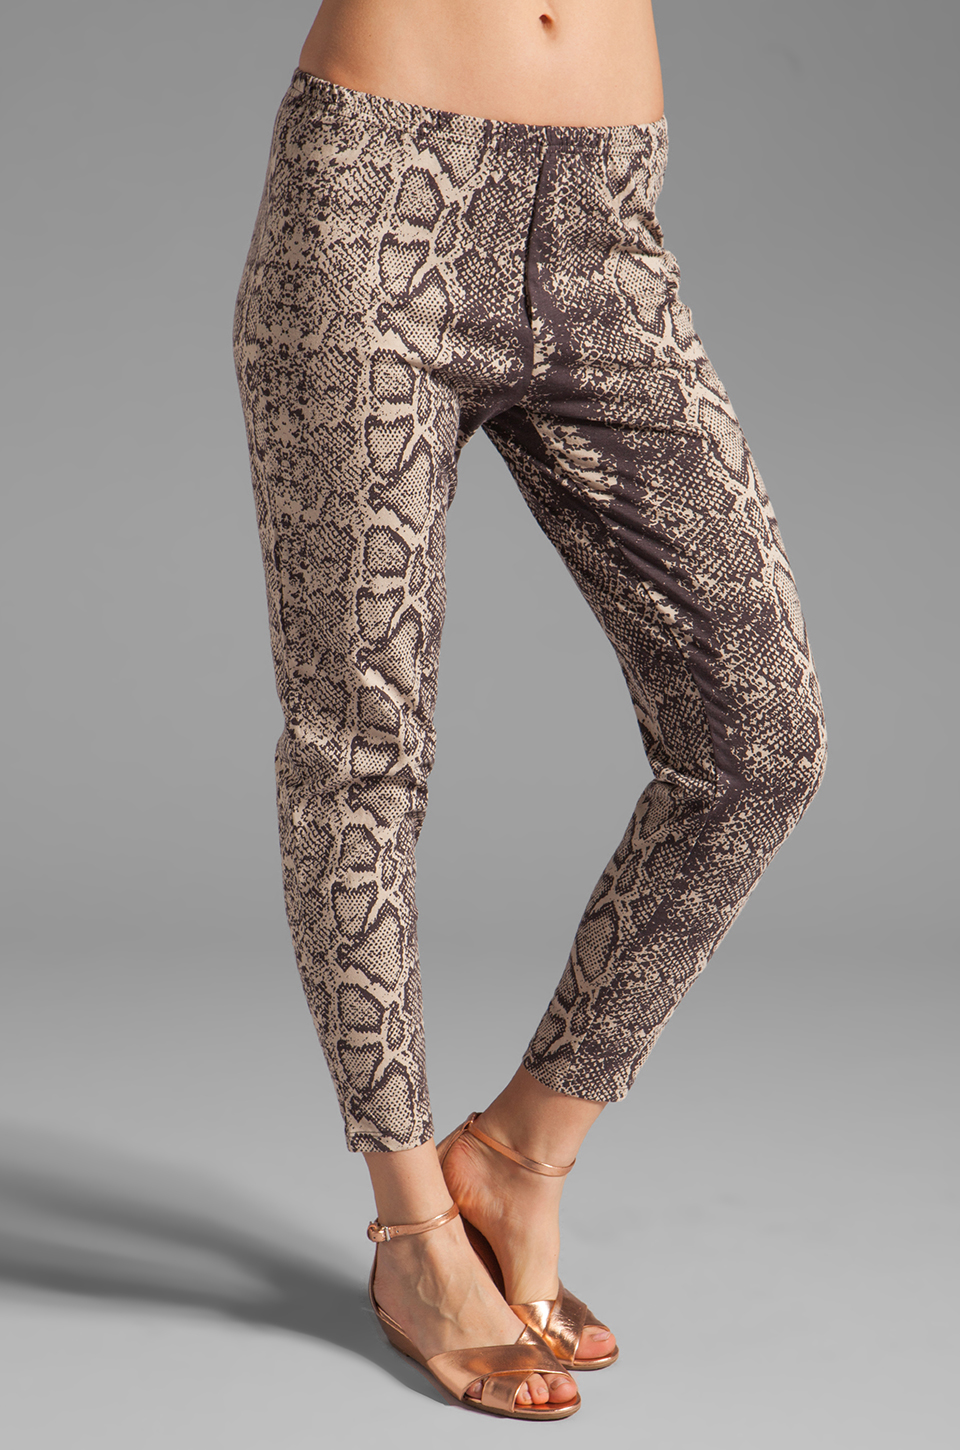 RVCA Rider Snake Eyes Pant in Shale